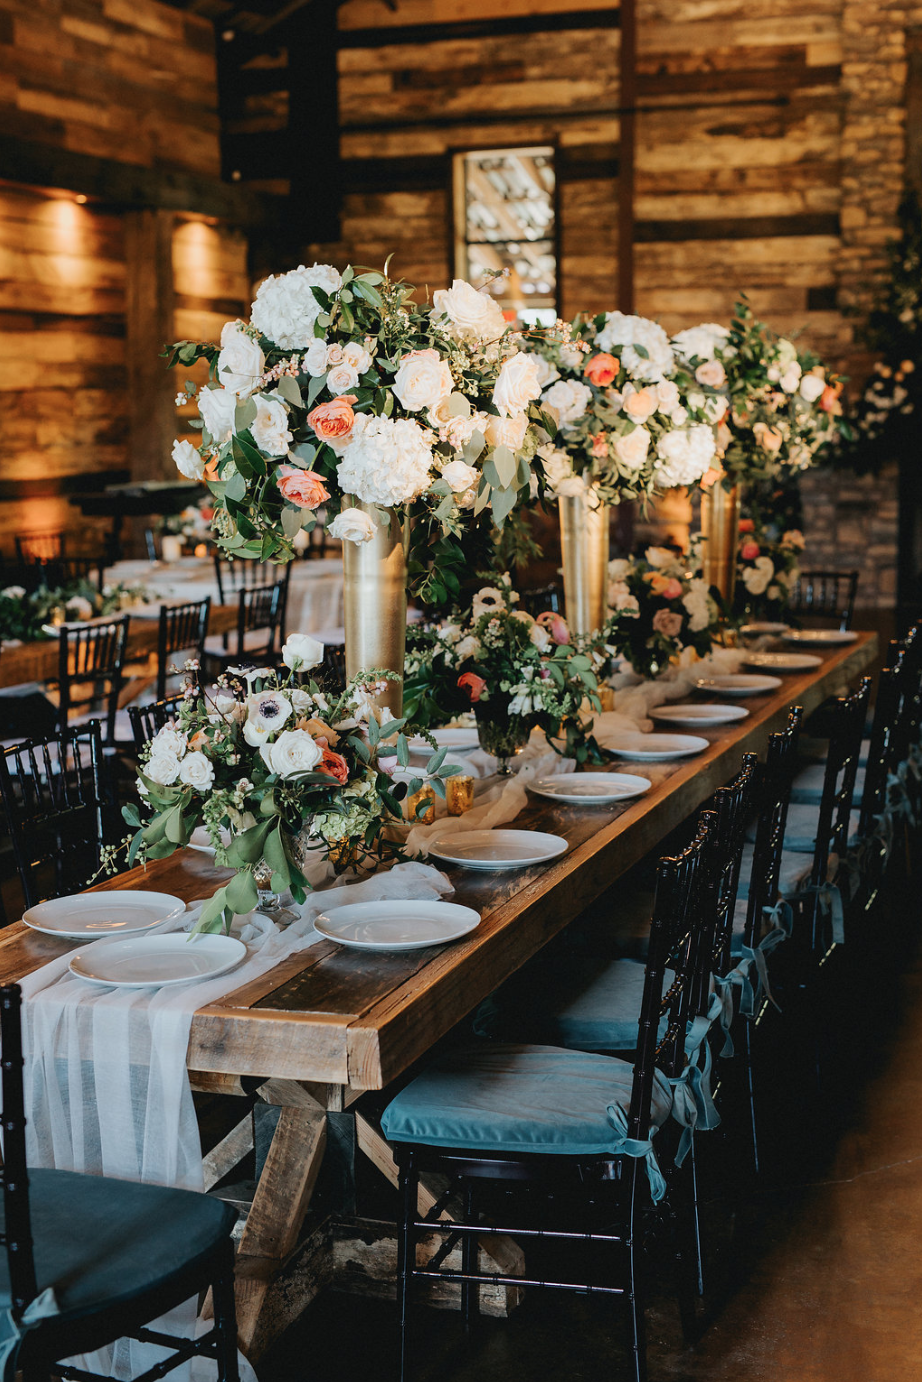 Wooden table with mixed heights arrangements by Maxit Flower Design in Houston, TX